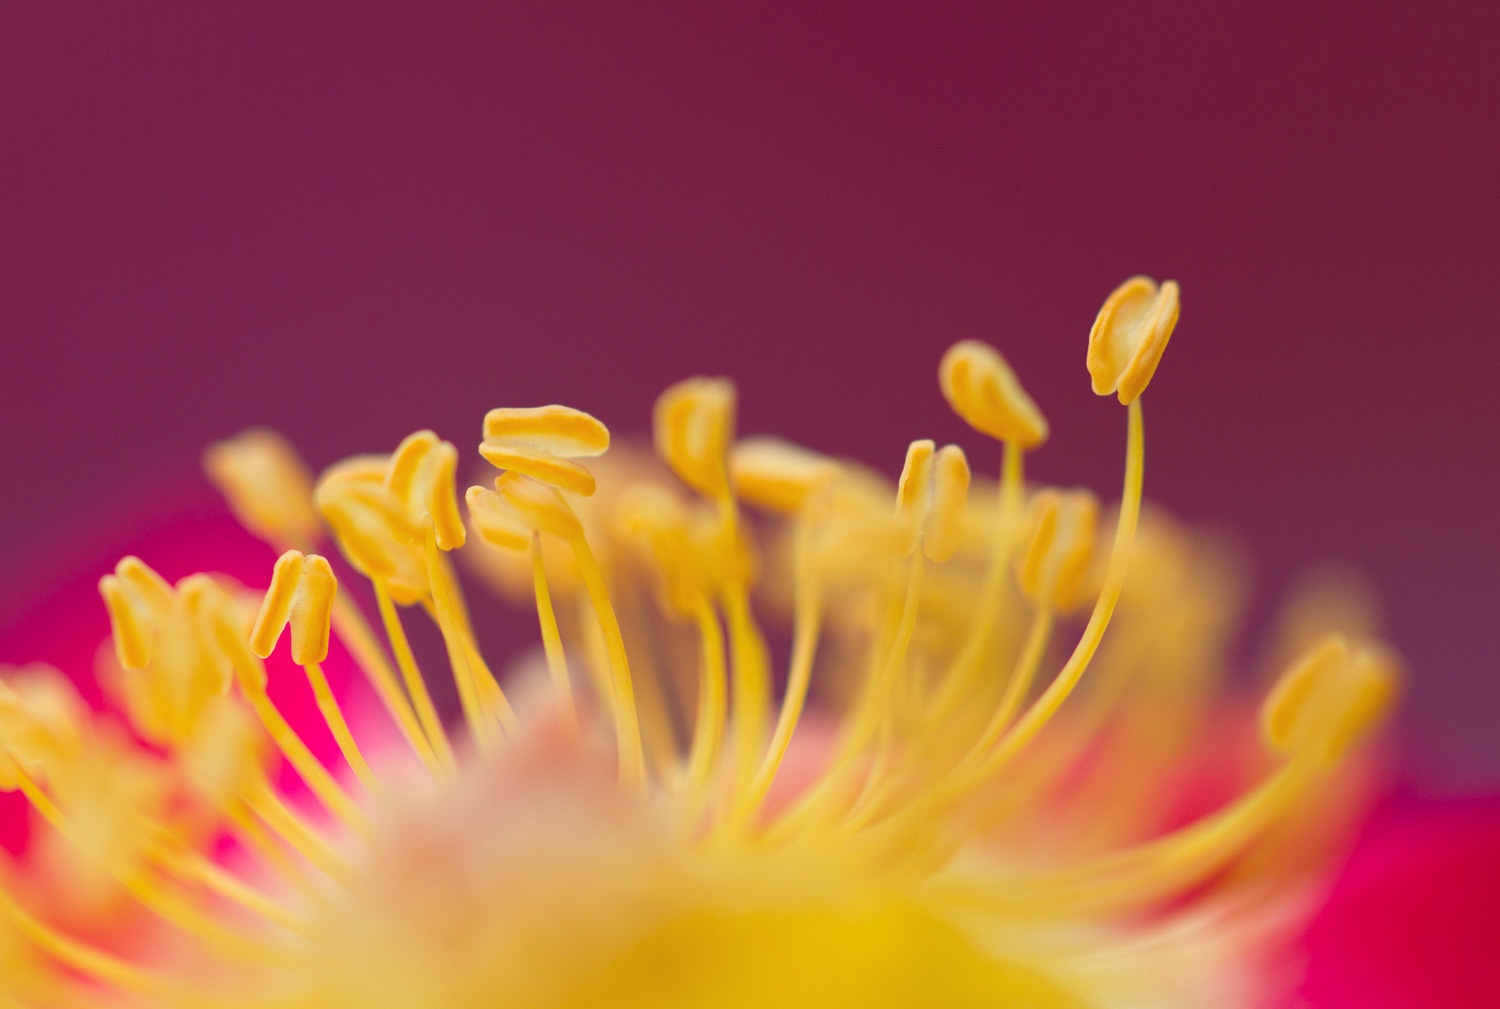 Extreme macro shot of a flower